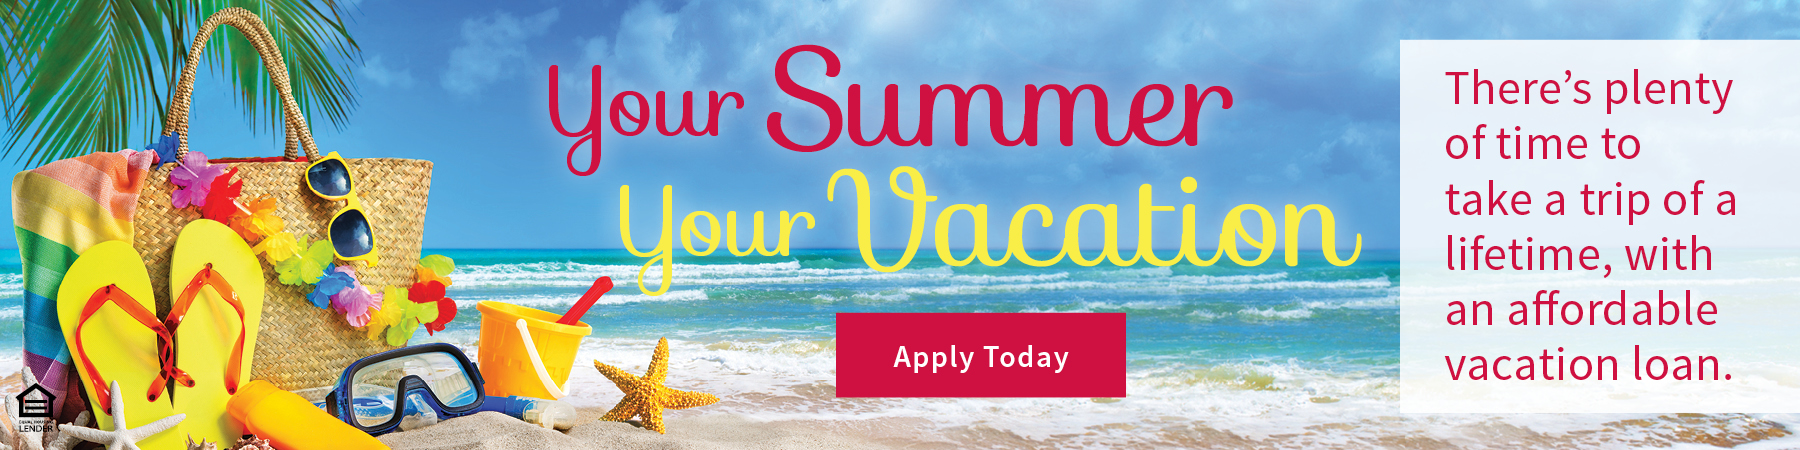 Your Summer, Your Vacation, Apply for Loan Today